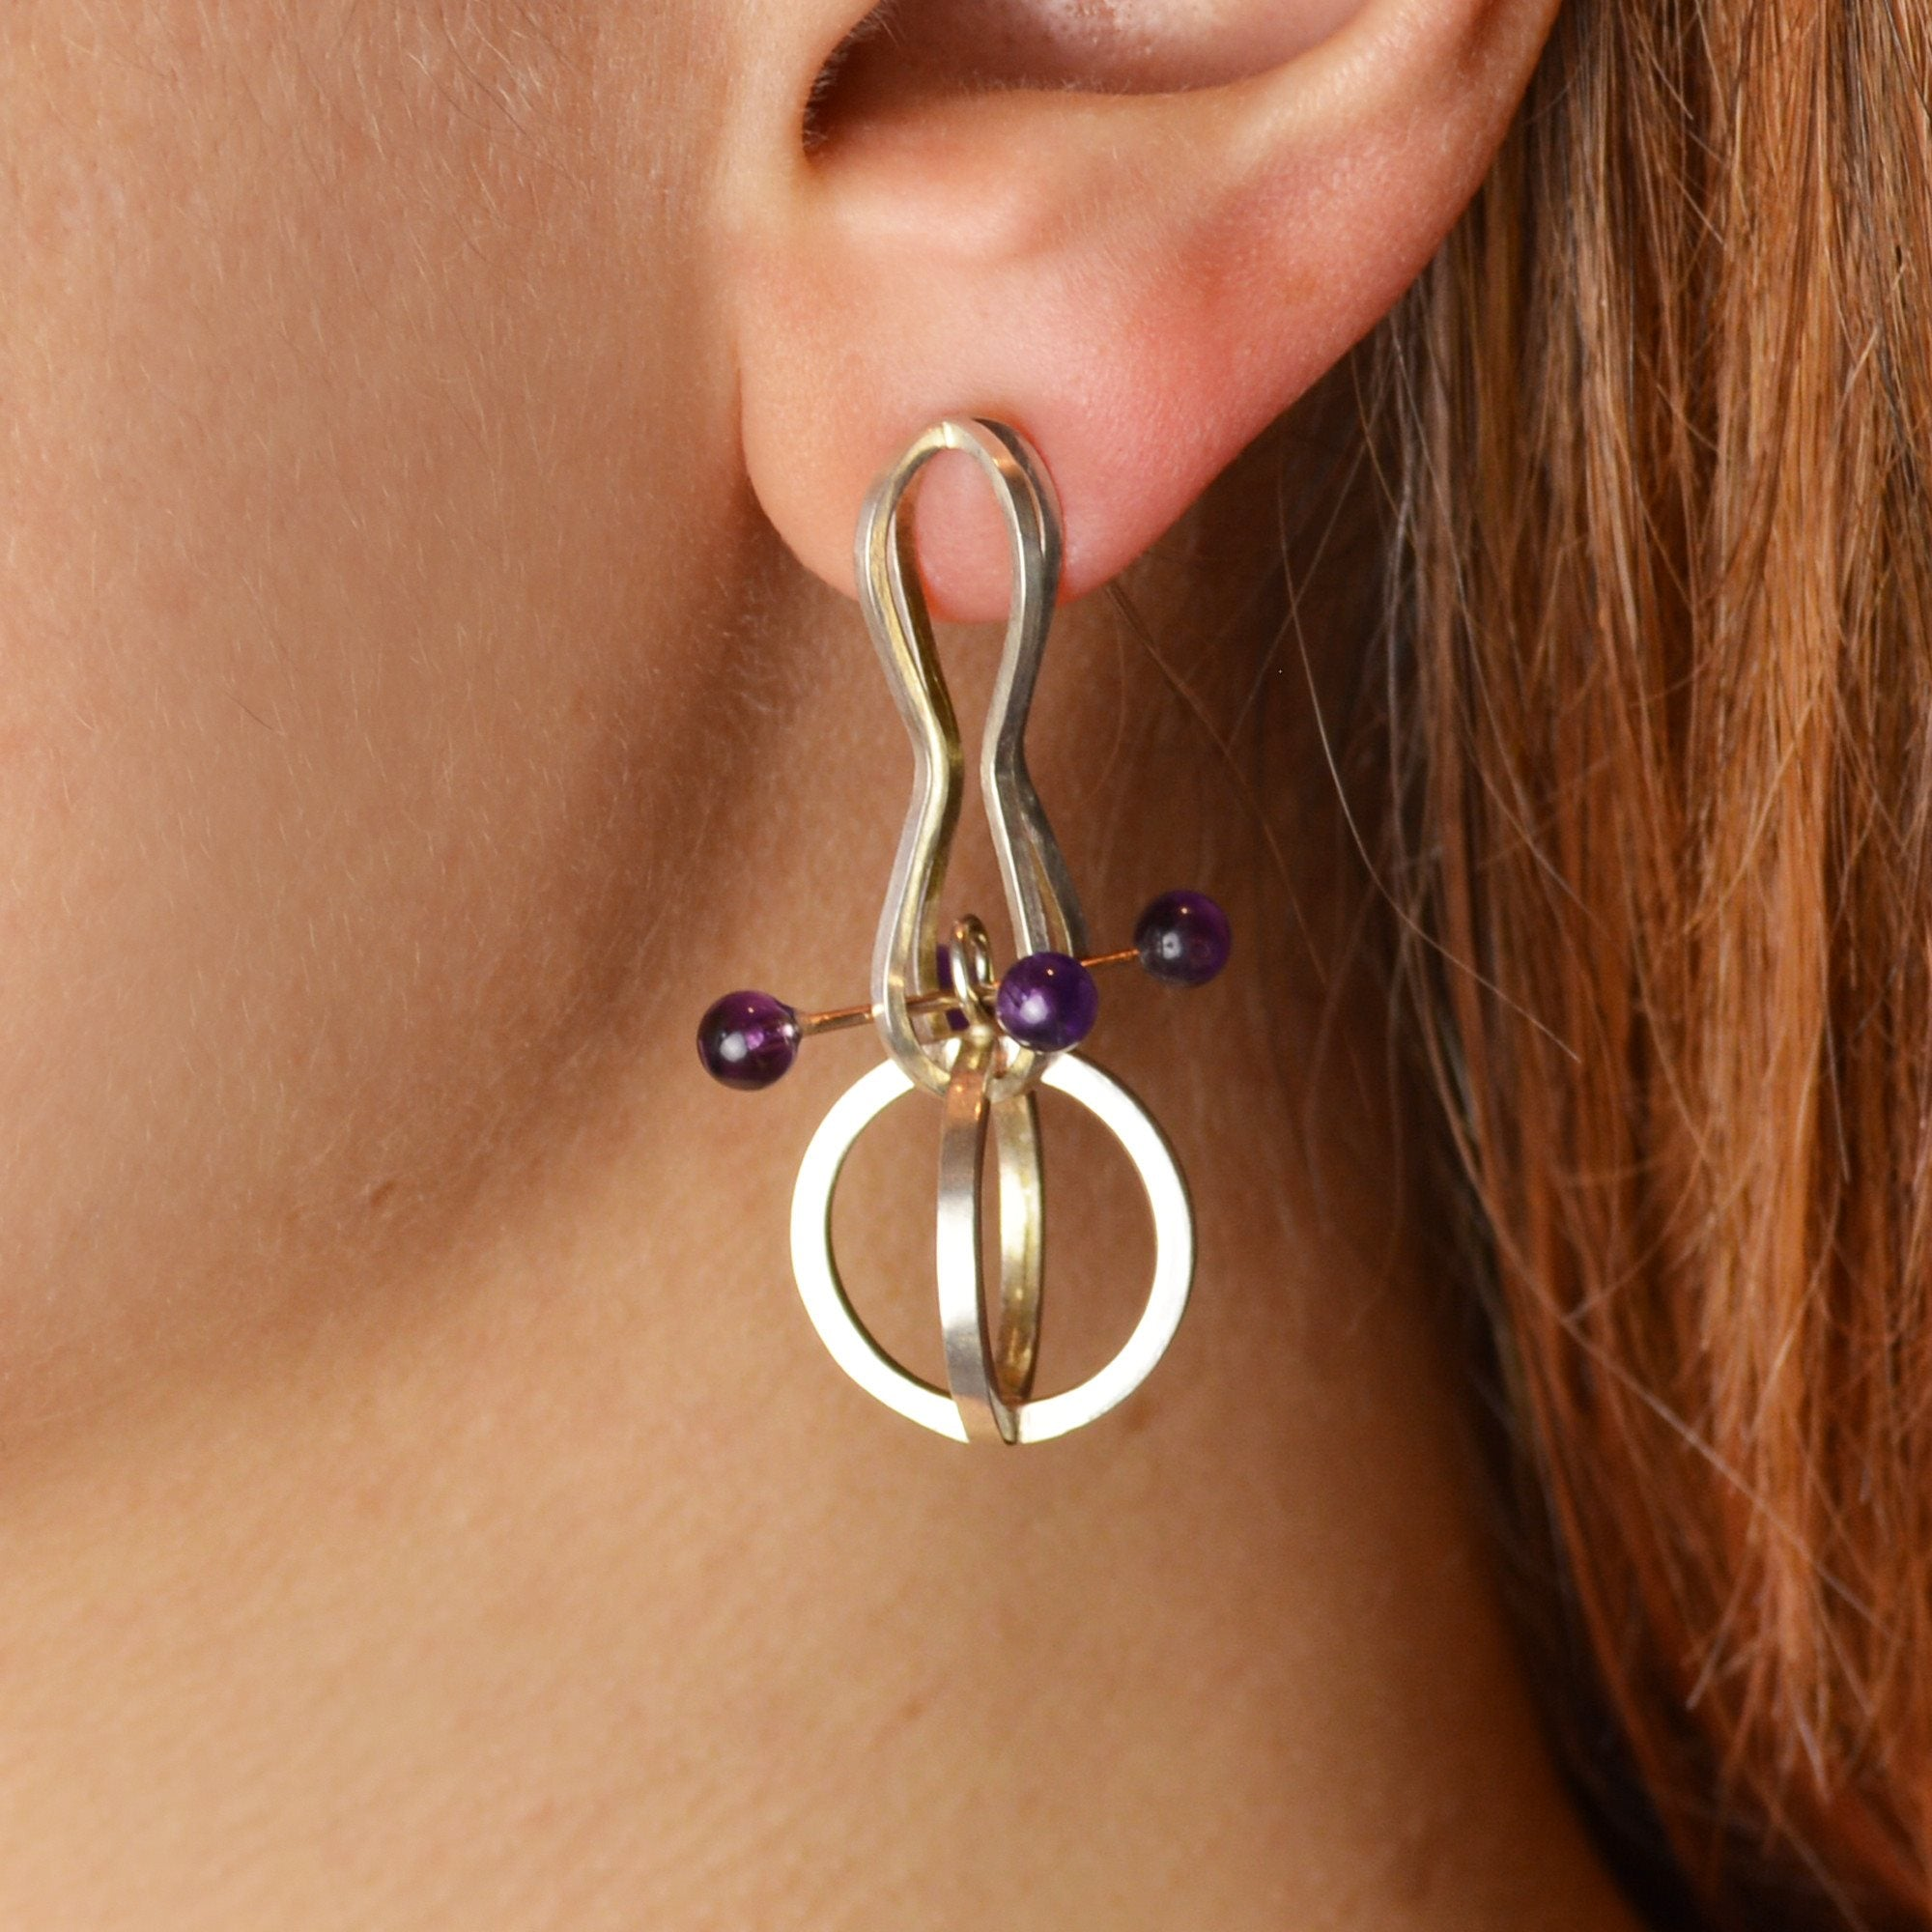 Retro Orbit Drop Earrings in Sterling Silver, 14k Gold, Amethyst